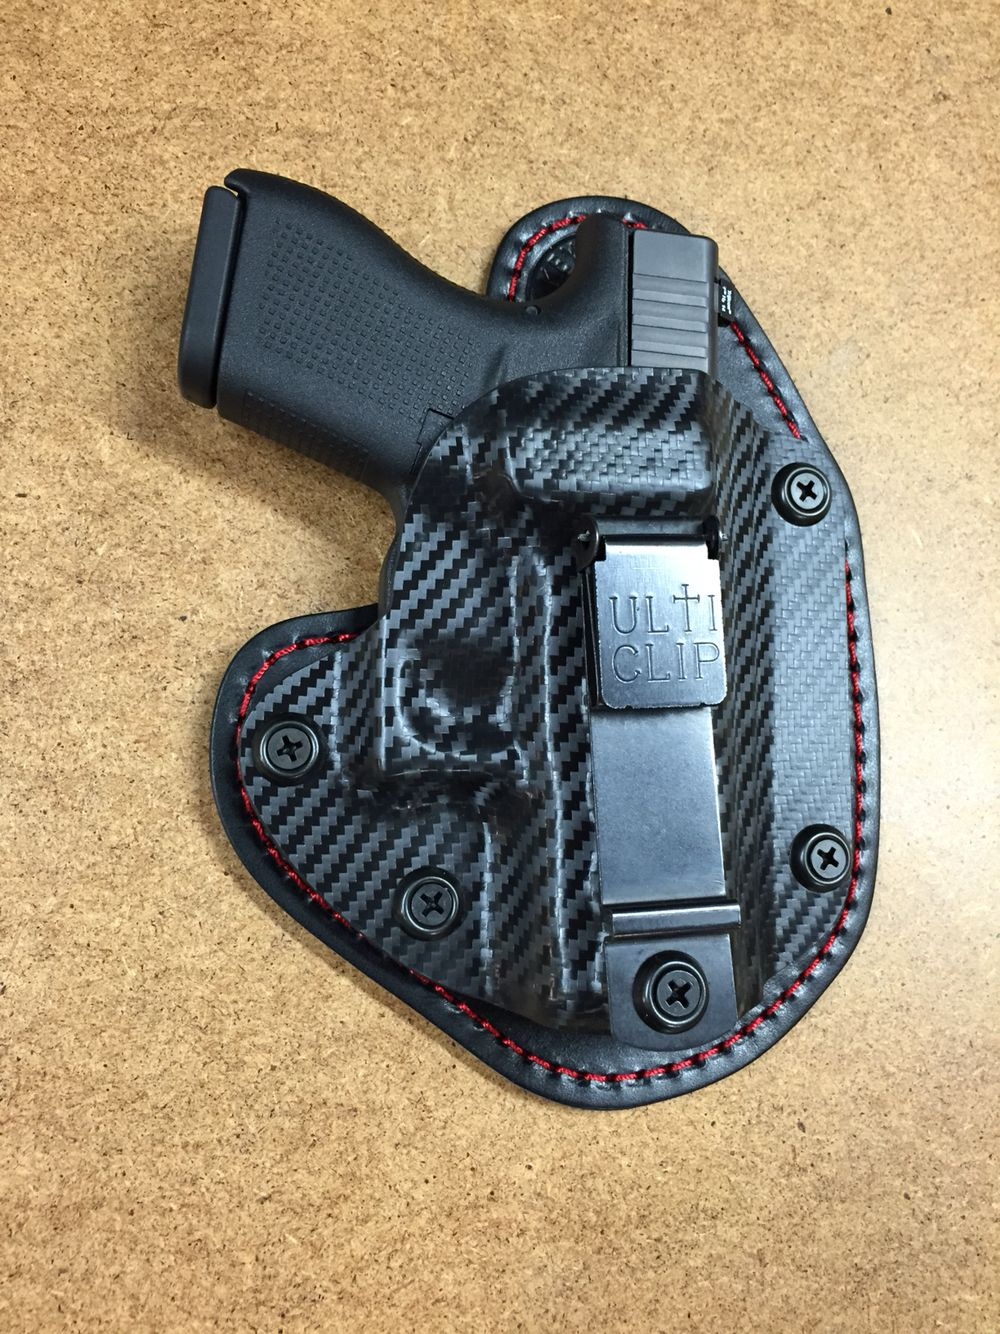 Sporting Goods Professional Sale Iwb-kydex Holster Ccw Concealed-carry Batman In Many Styles